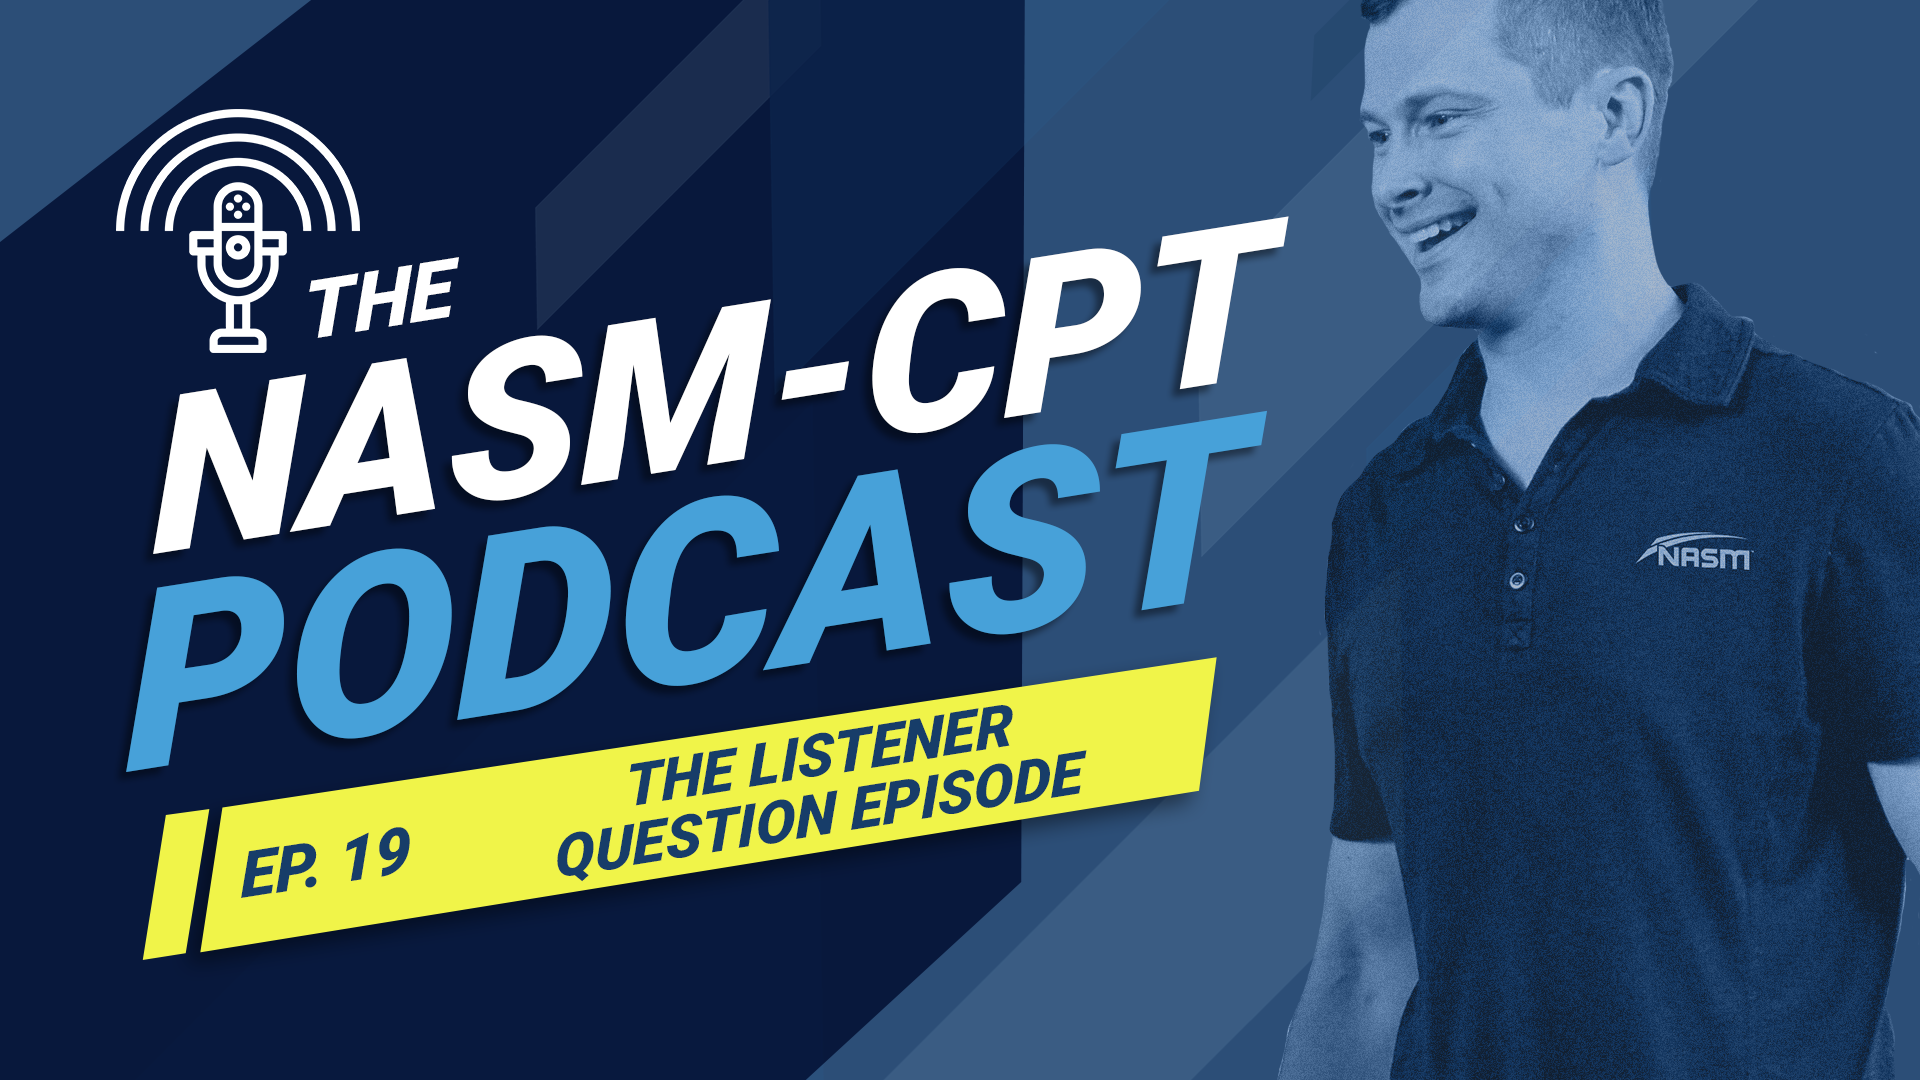 NASM-CPT Podcast: The Listener Question Episode